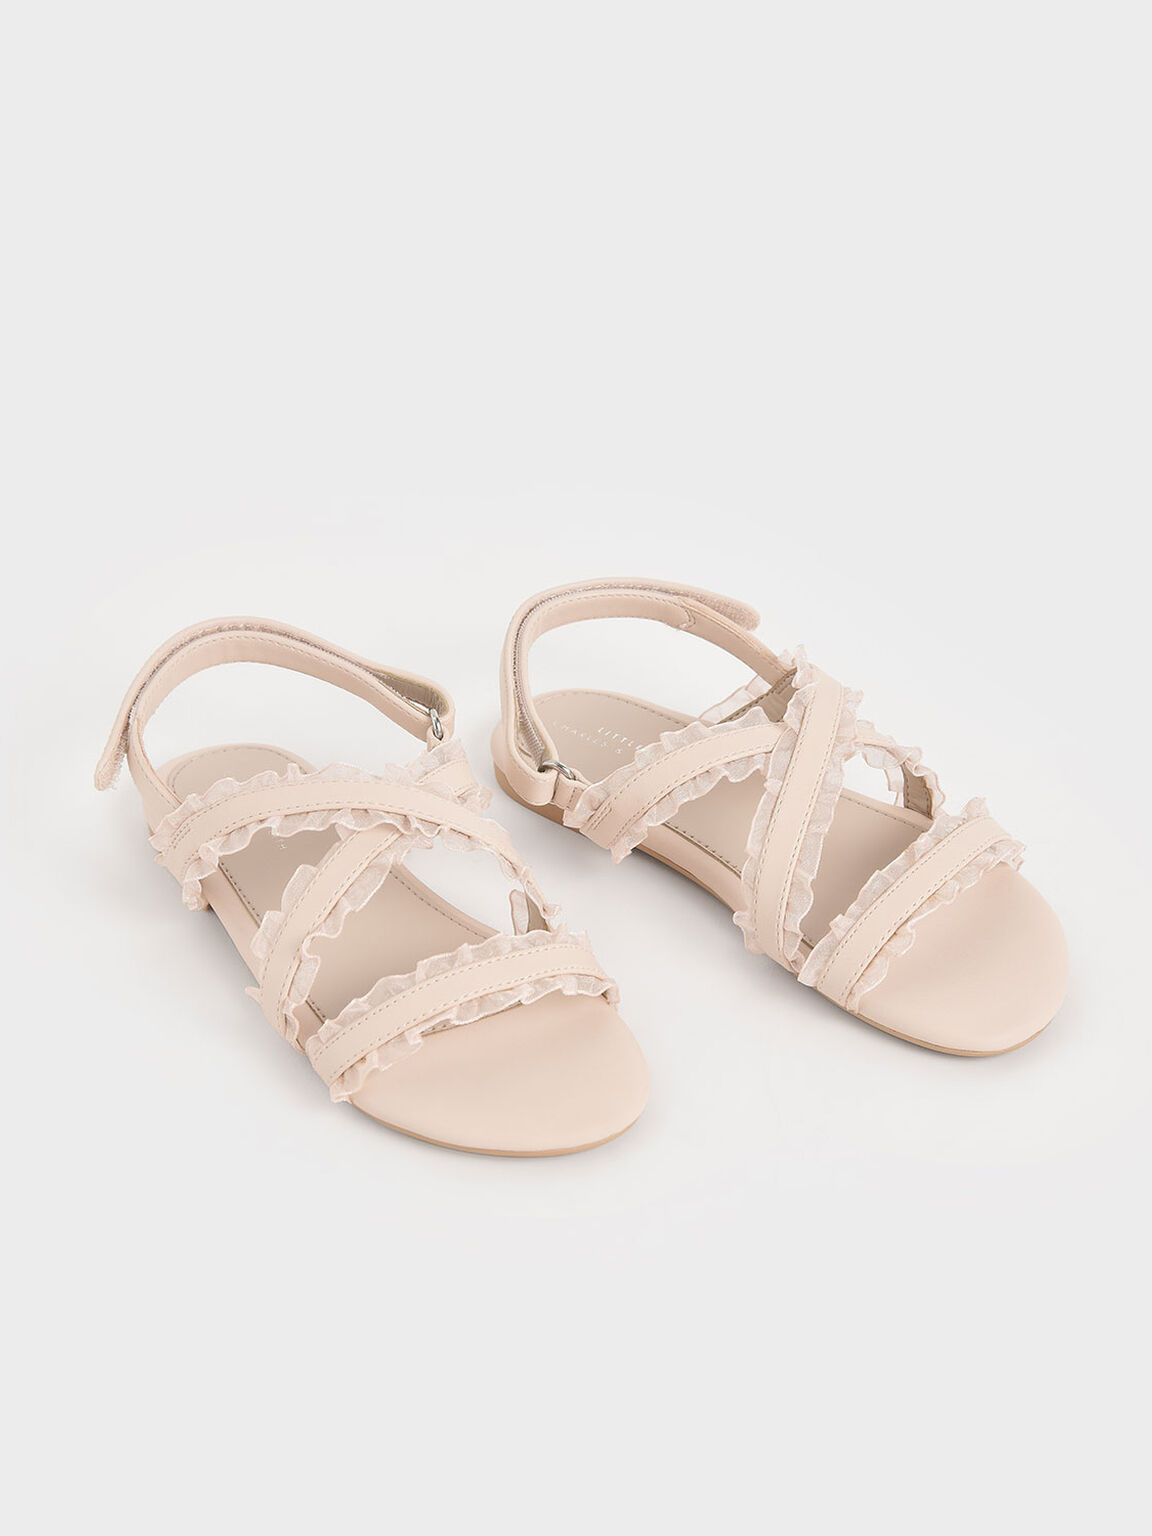 Girls' Frill-Trim Flat Sandals, Light Pink, hi-res